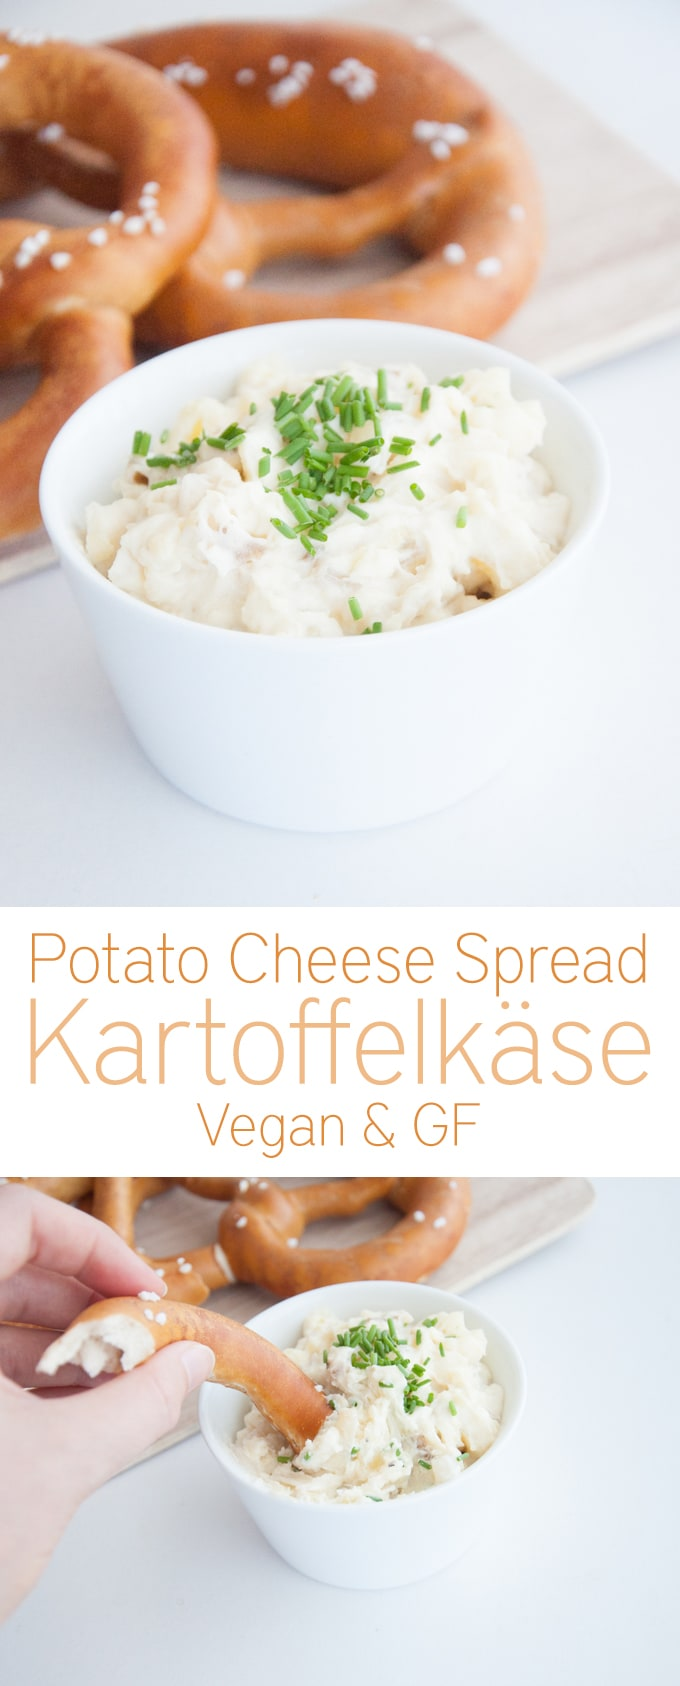 Kartoffelkäse - Potato Cheese Spread